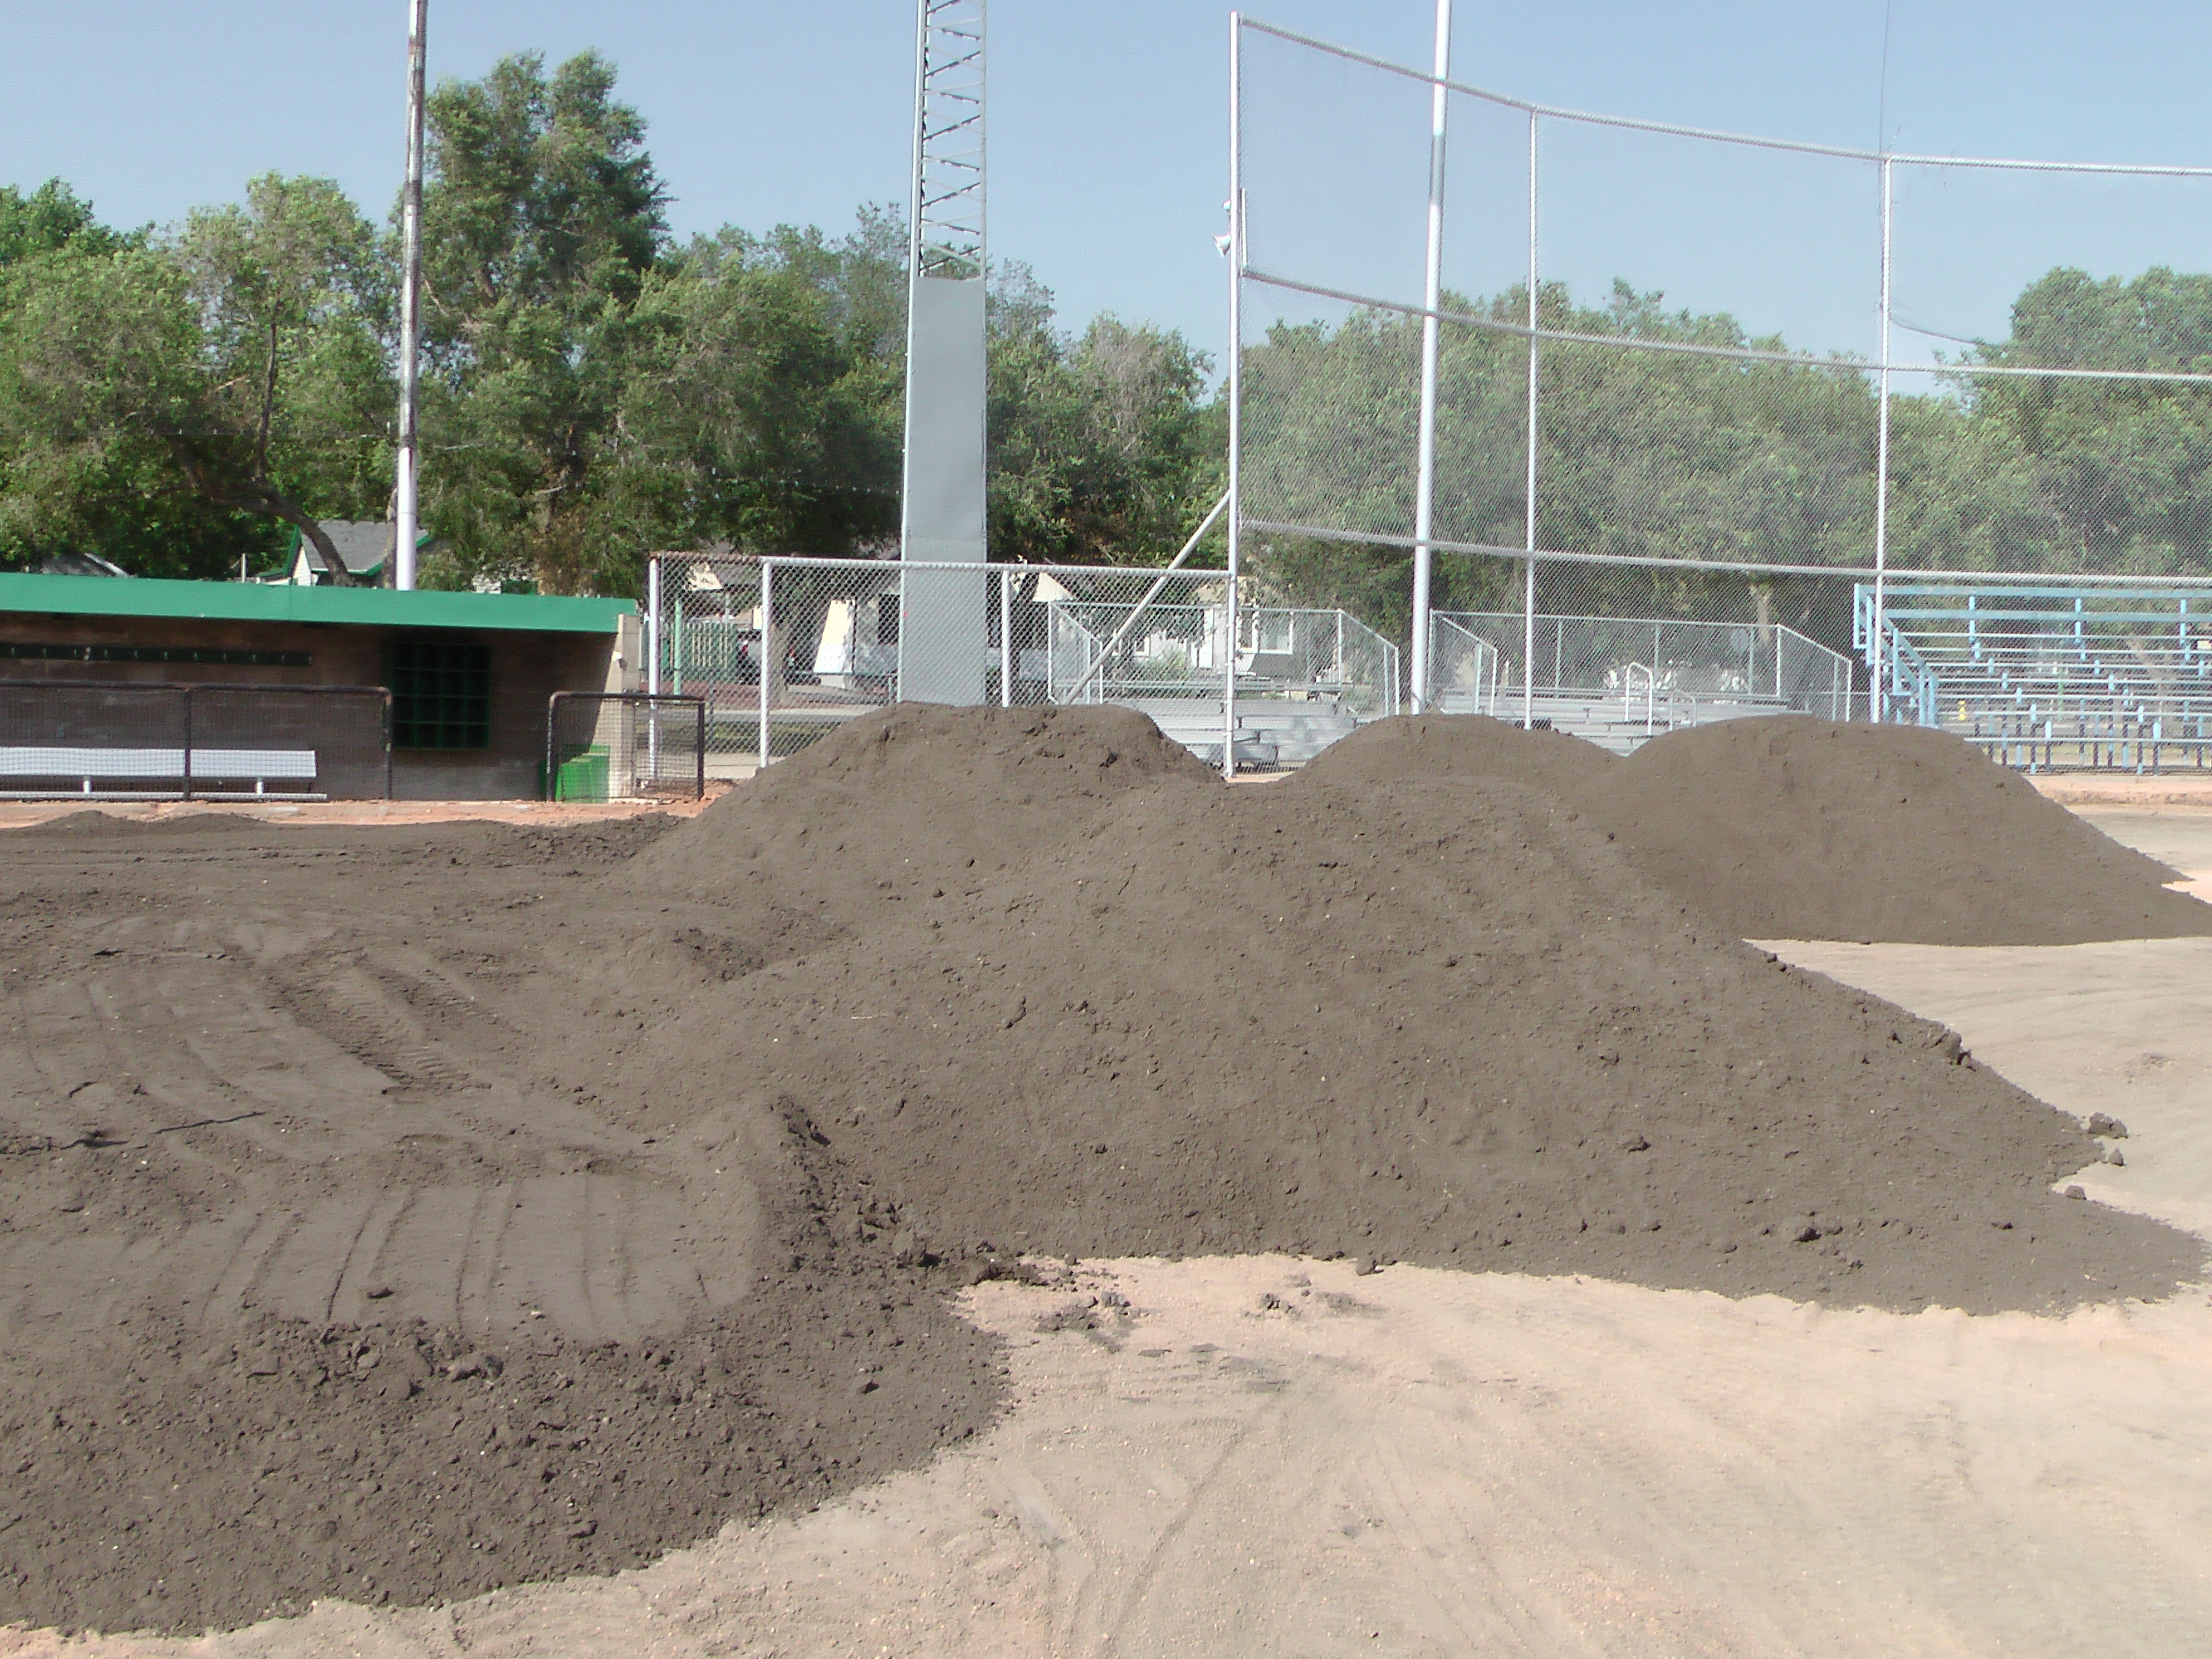 Aug 22 Optimist Park Field Renovations: New Top Soil Going In, after 45 dump trucks of dirt and grass removed! Pics and Video...check back for more!  - Image 14